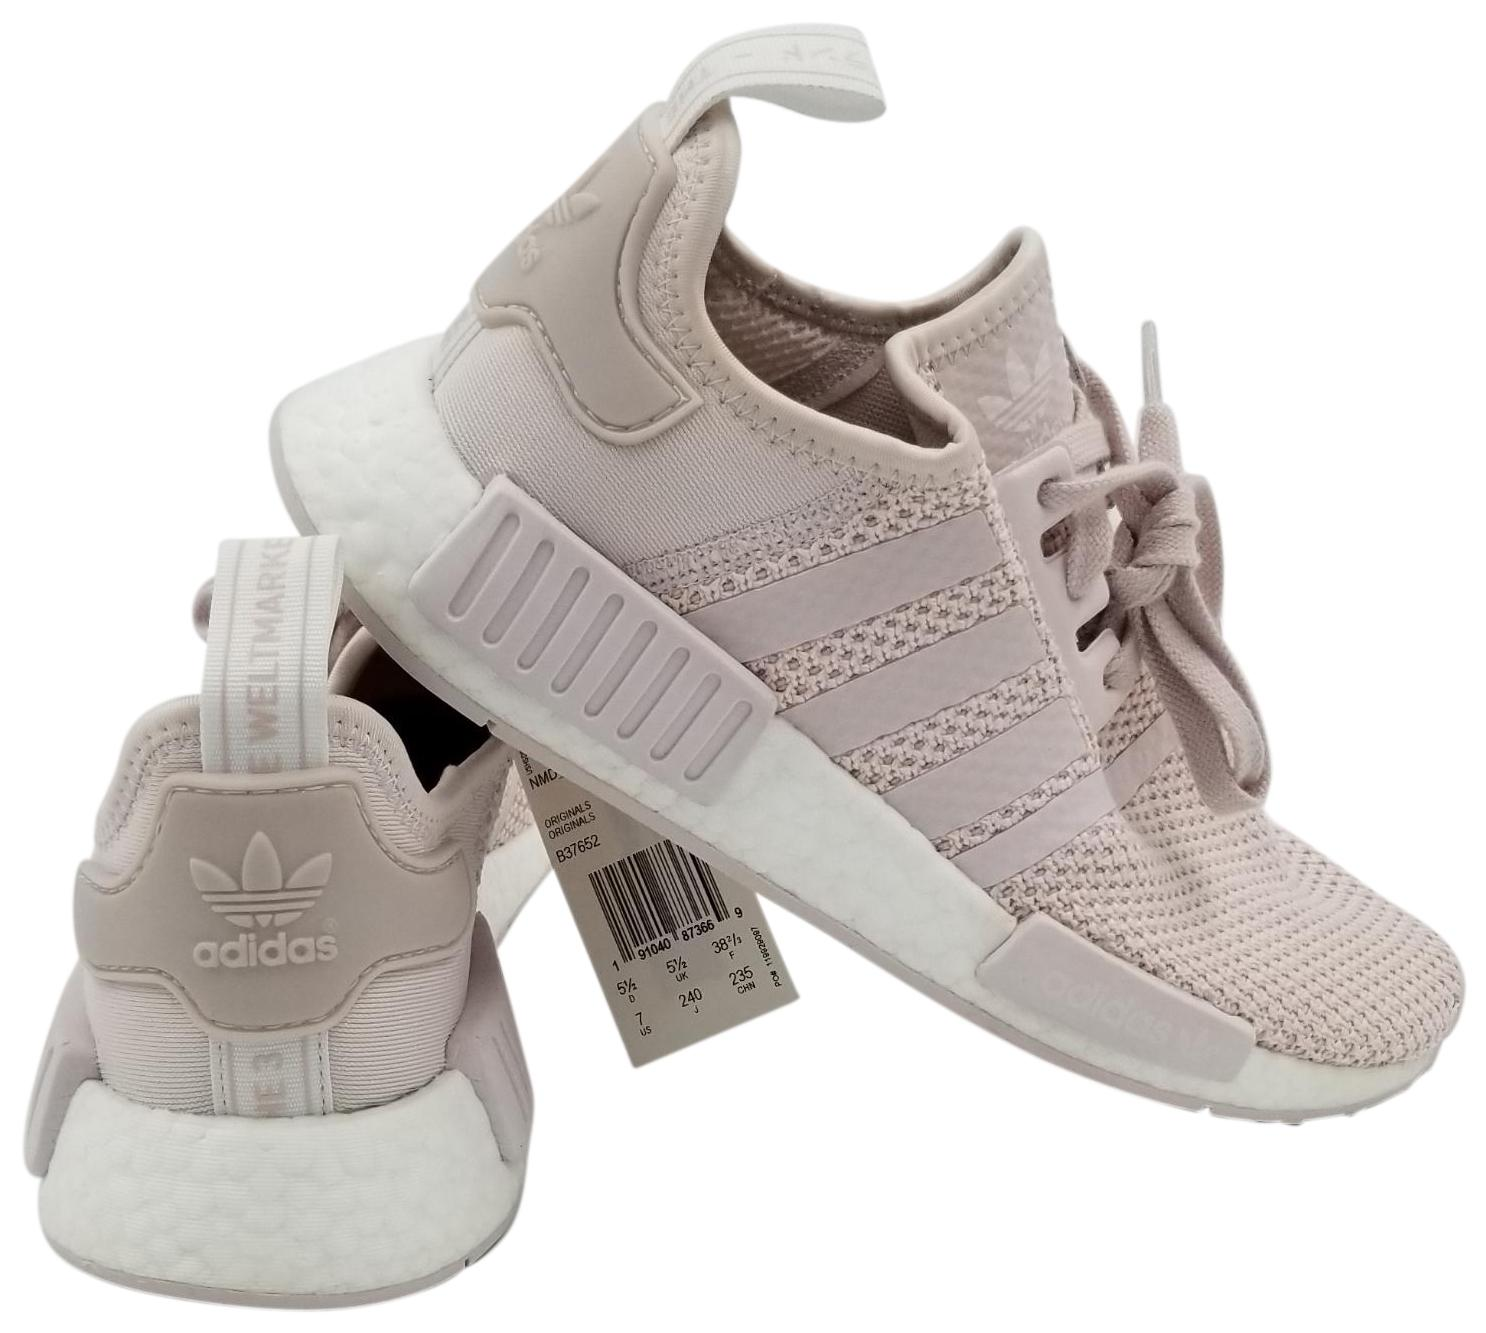 real adidas nmd runner womens pink quilt 8a9cf 87229